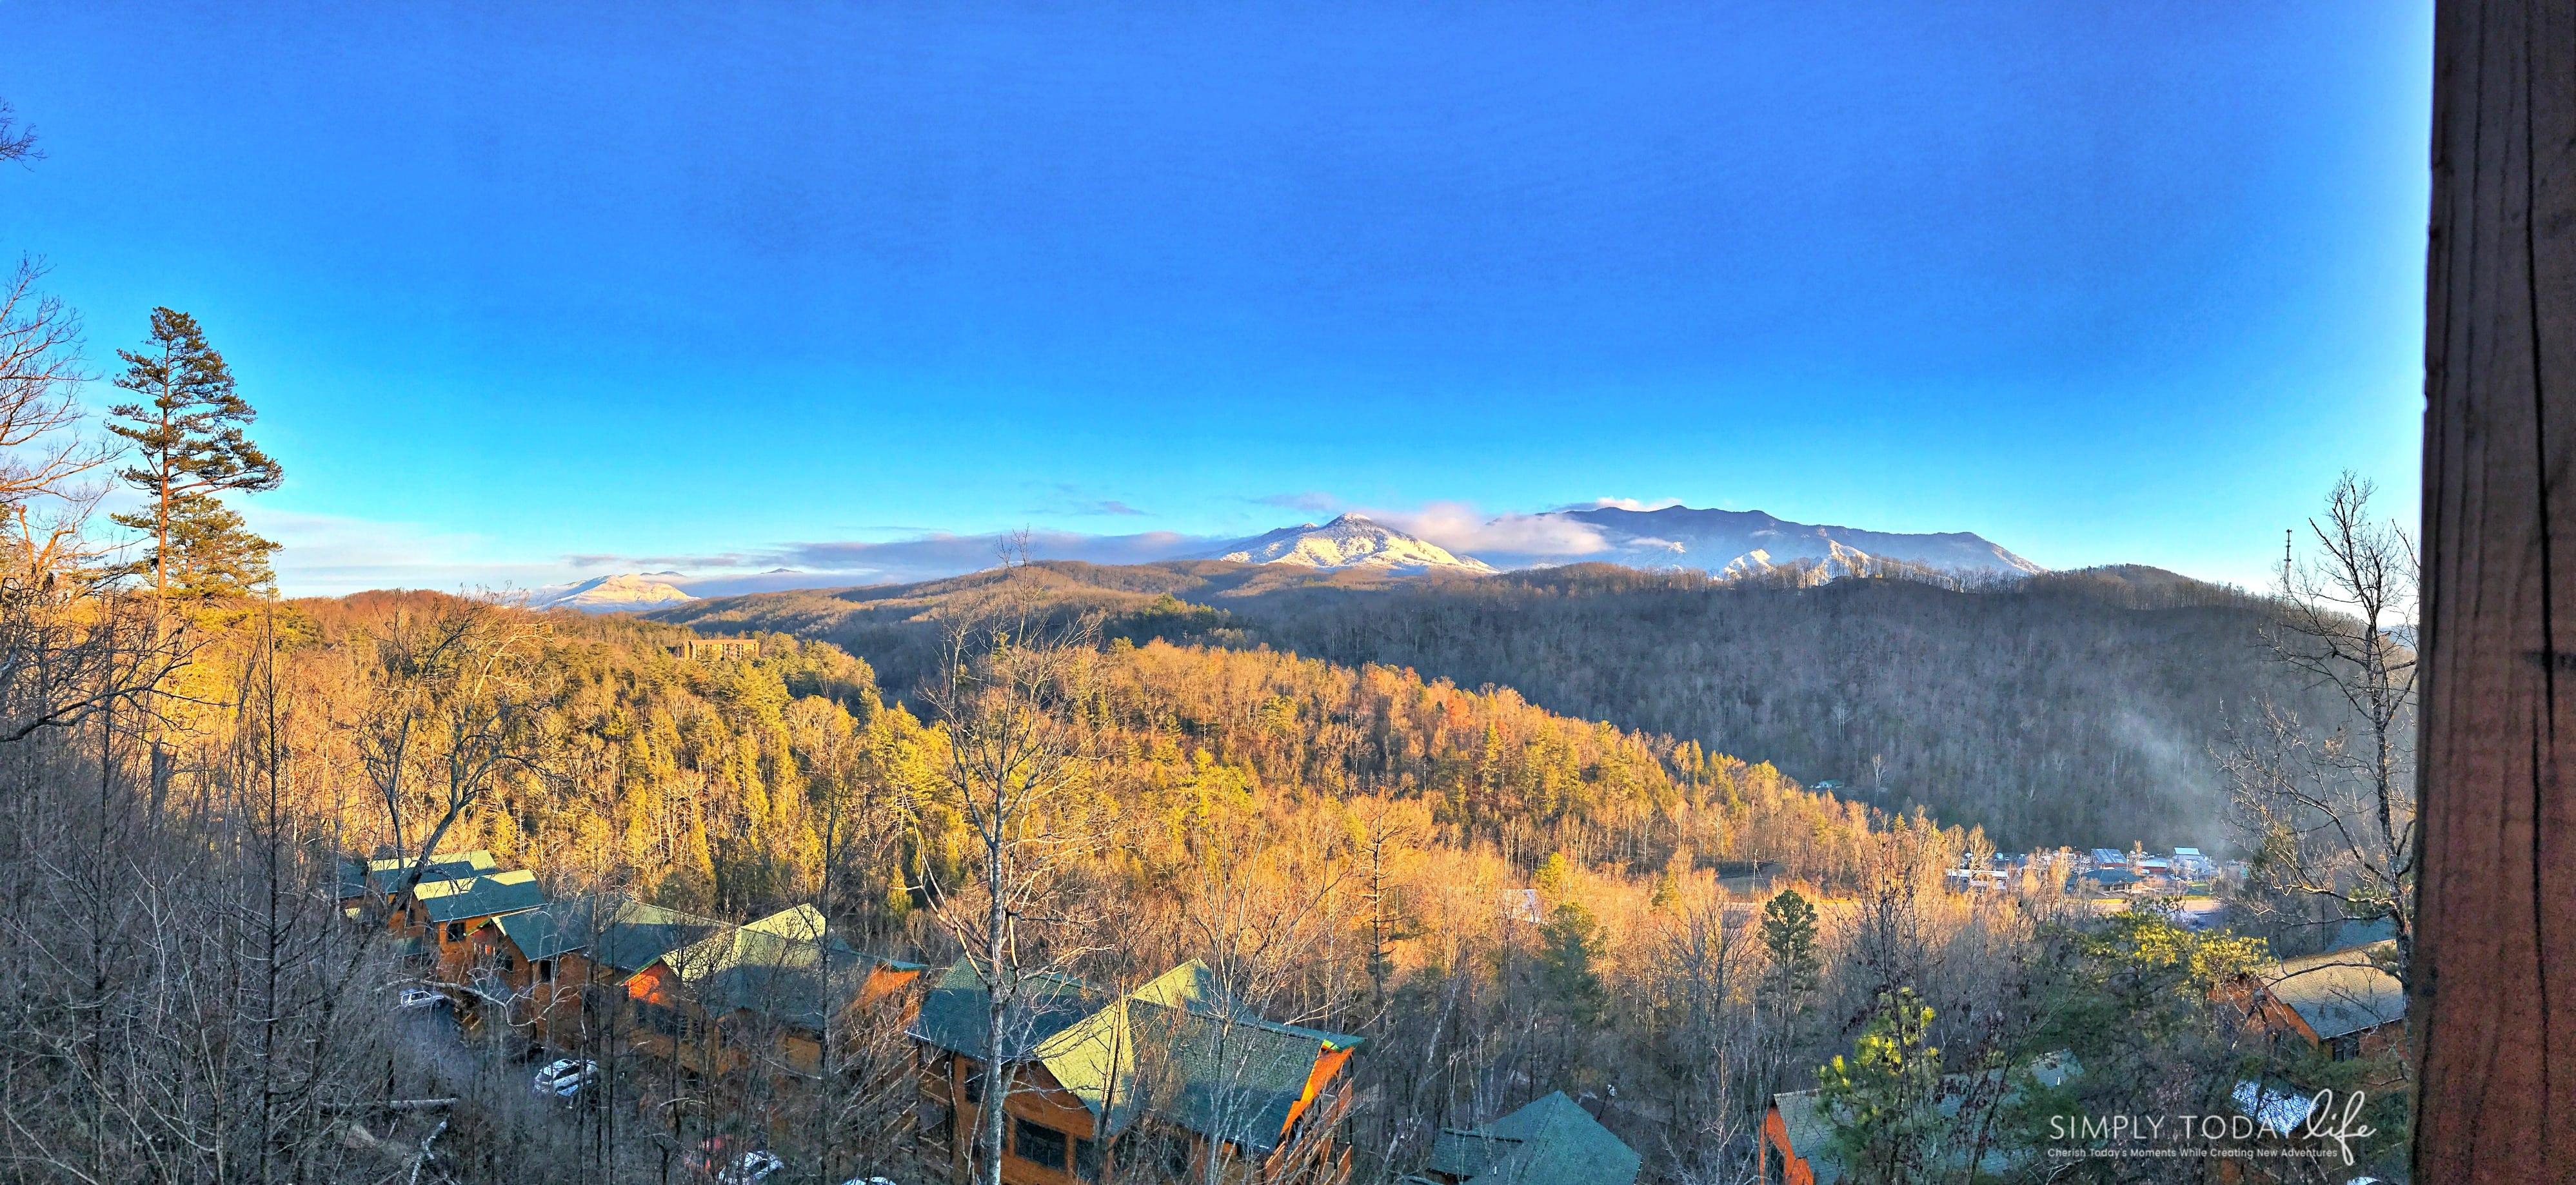 Cabins of Gatlinburg TN with Smoky Mountain Views - simplytodaylife.com